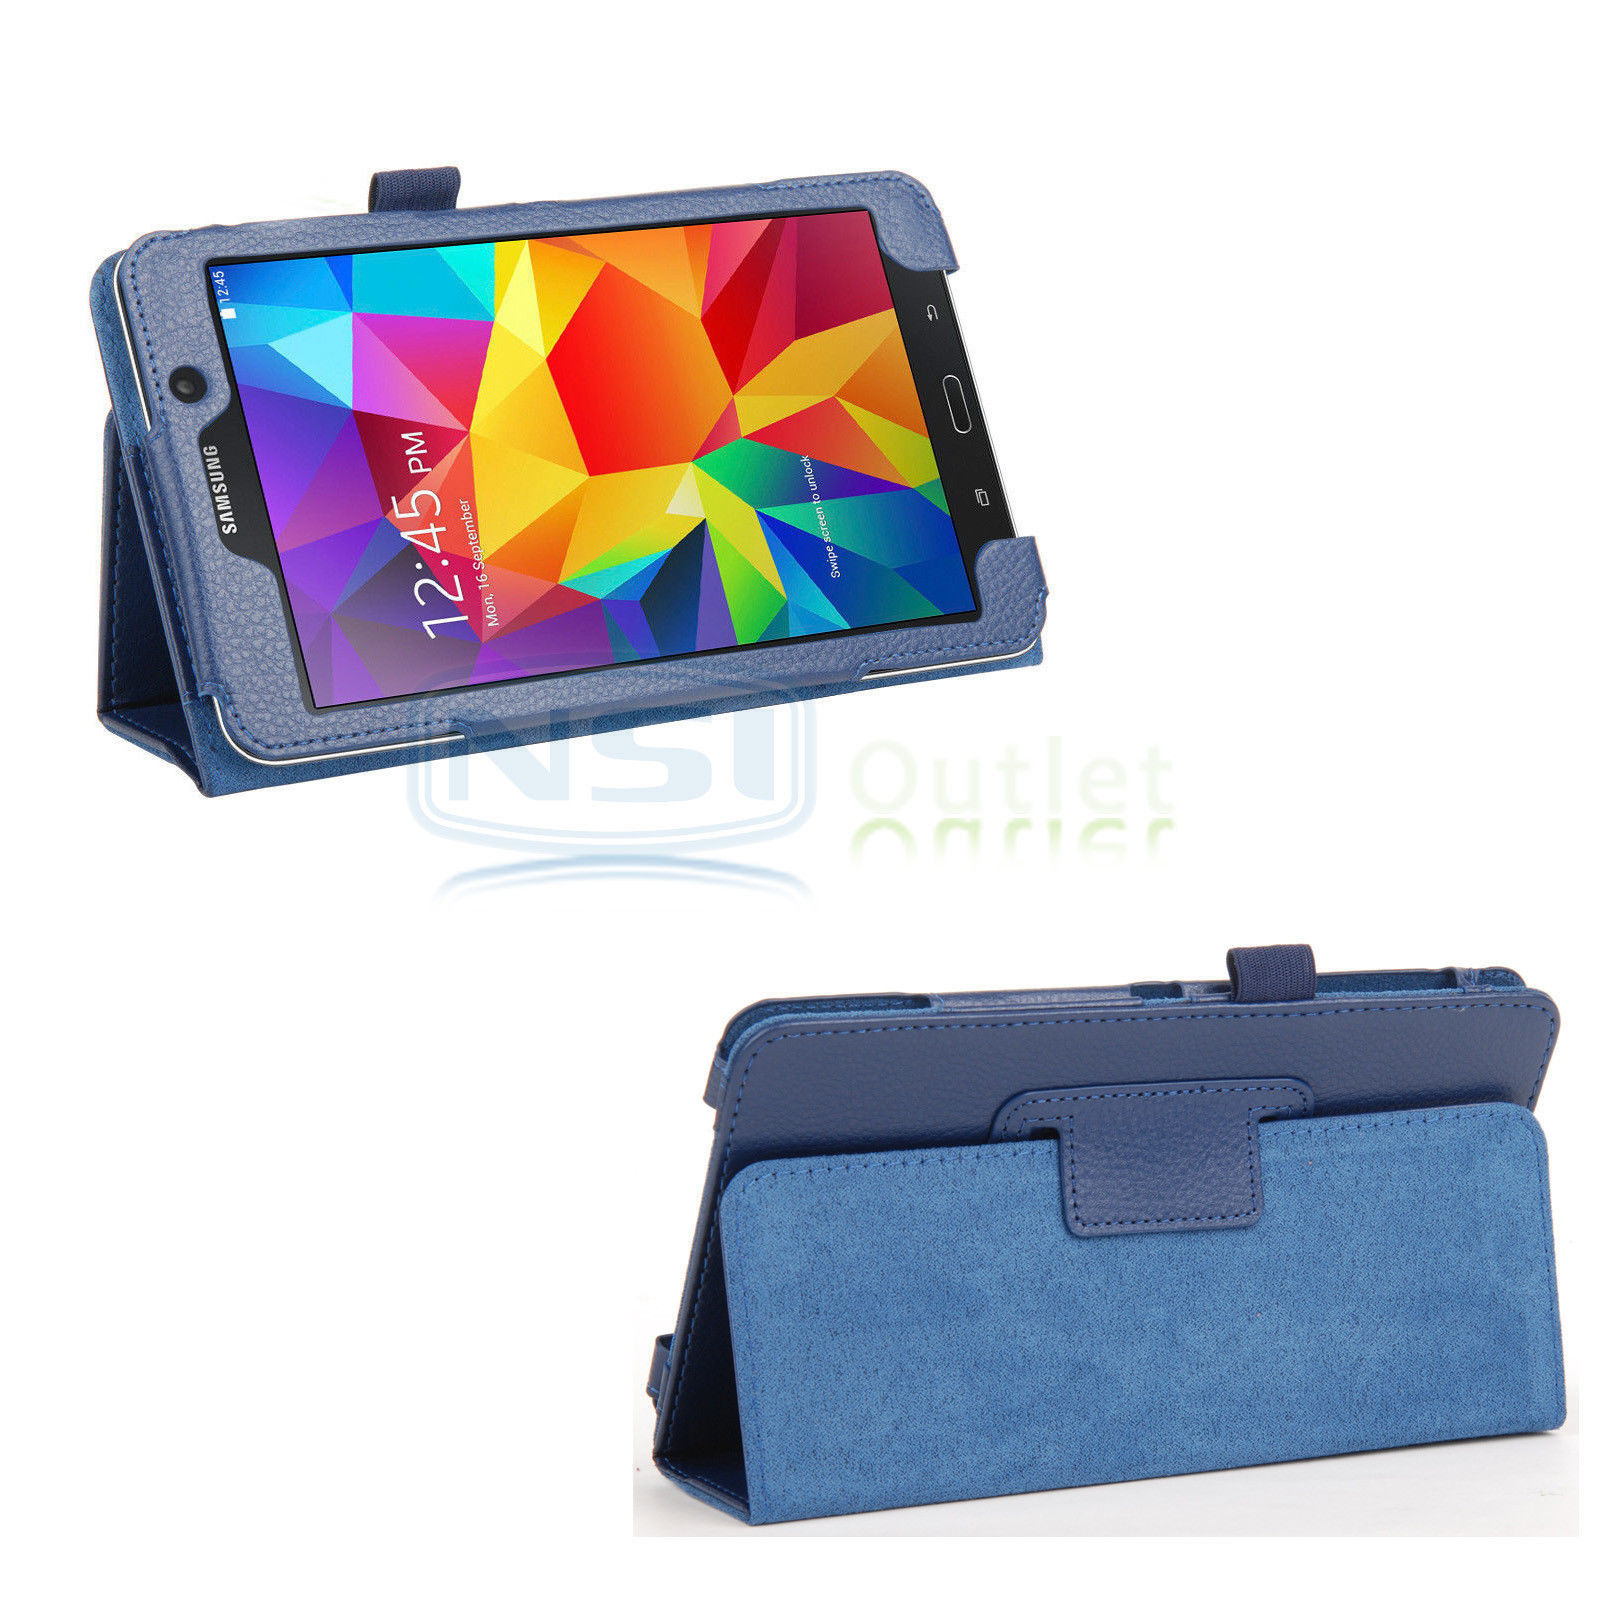 detailed look 81d31 34dc6 Details about Folio Stand Case Cover For Samsung Galaxy Tab 4 7 Inch  SM-T230NU T230 Tab 4 Nook